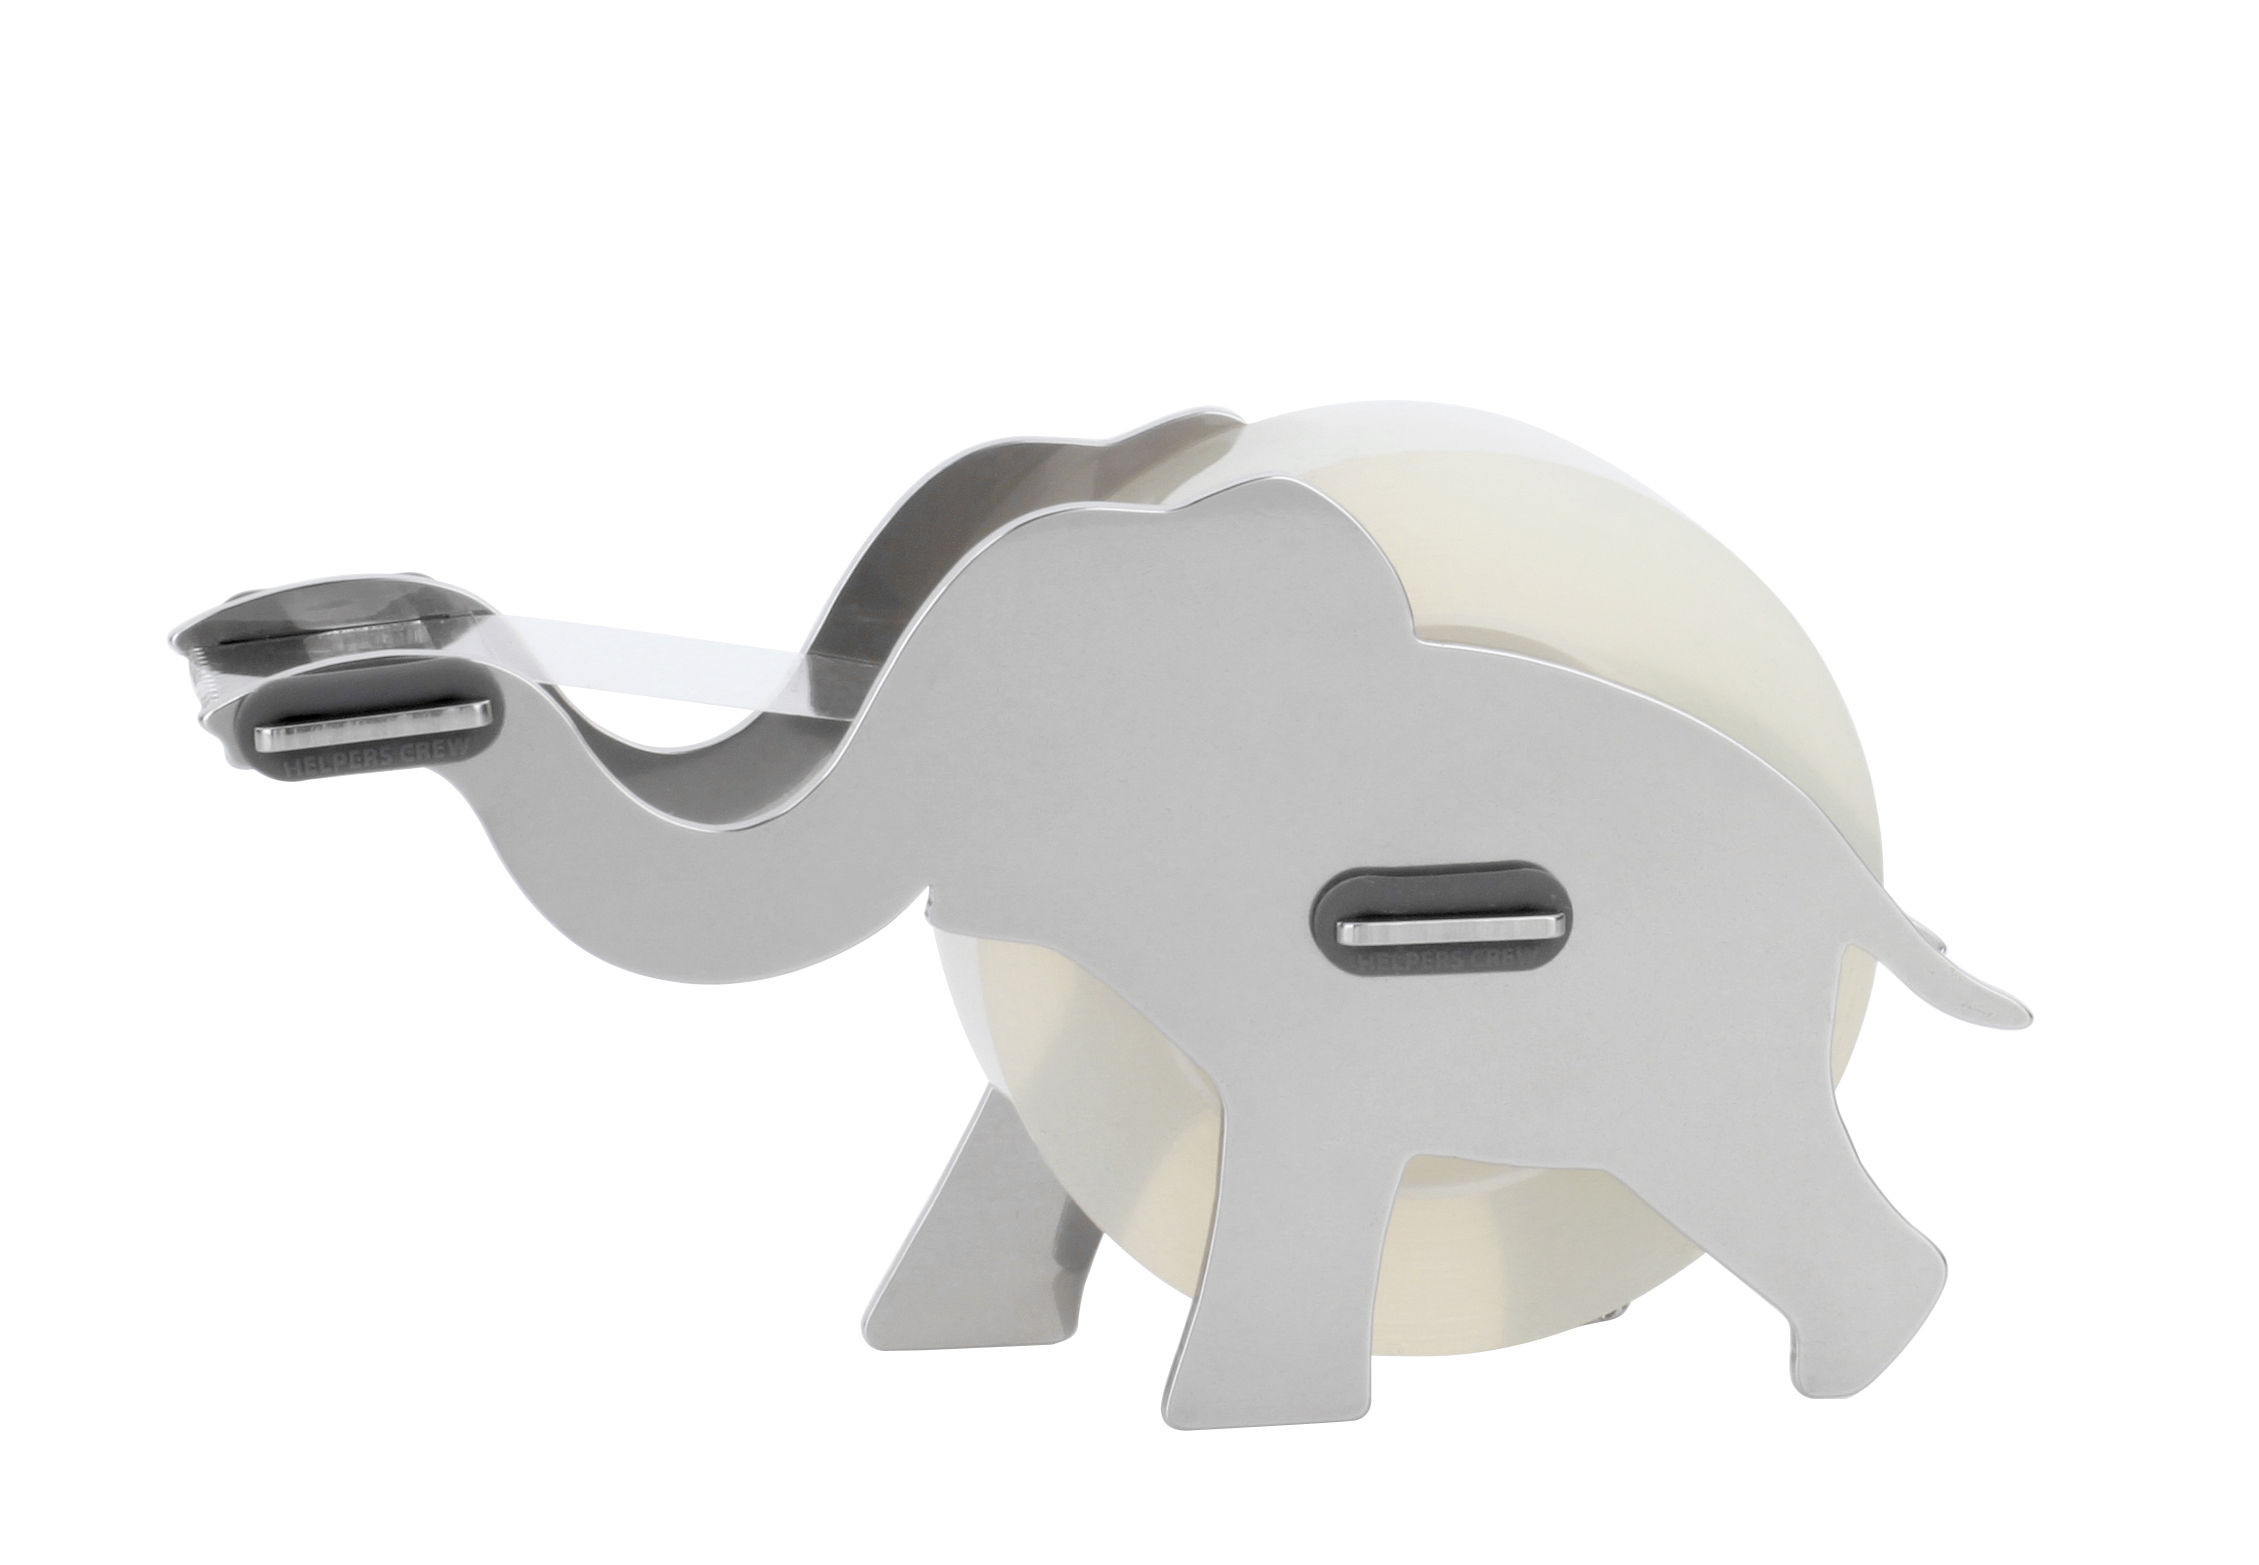 Accessories - Desk & Office Accessories - Elly Tape dispenser - / Elephant - Steel by Pa Design - Chromed - Silicone, Stainless steel